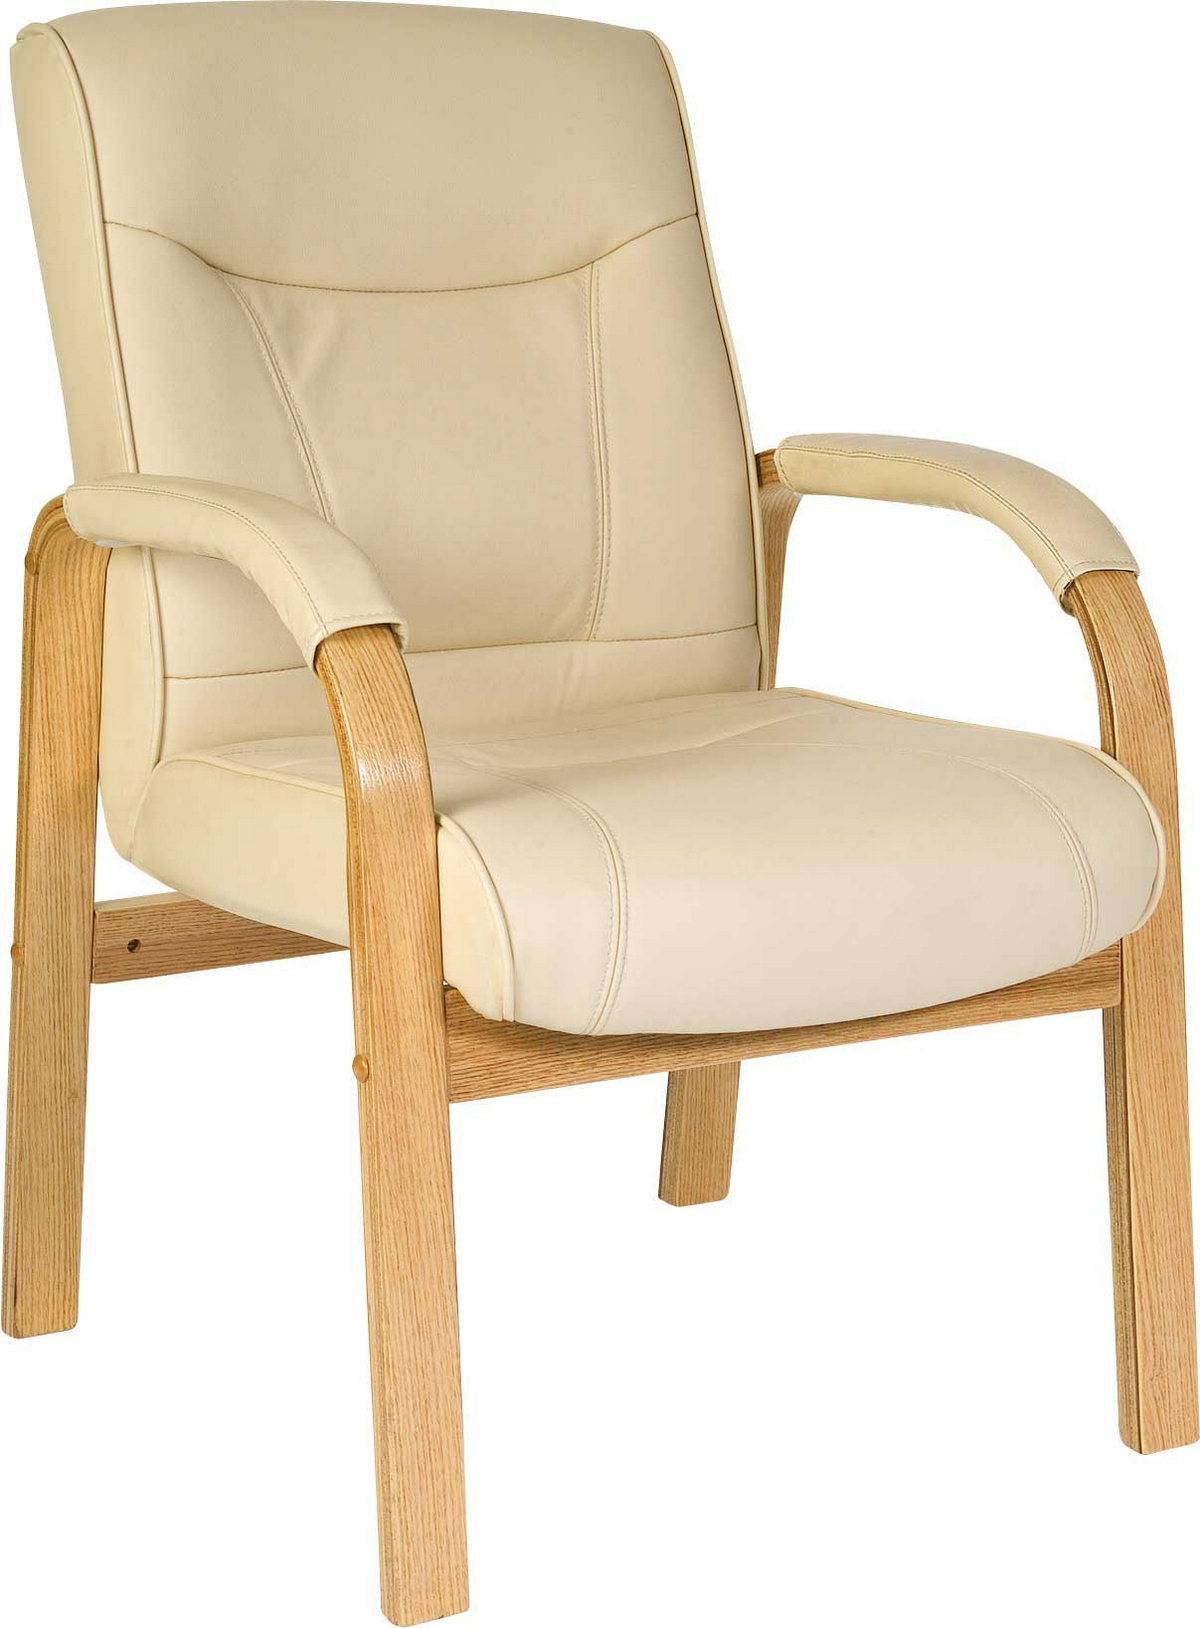 Lirus Visitor/Office Padded Cream Chair